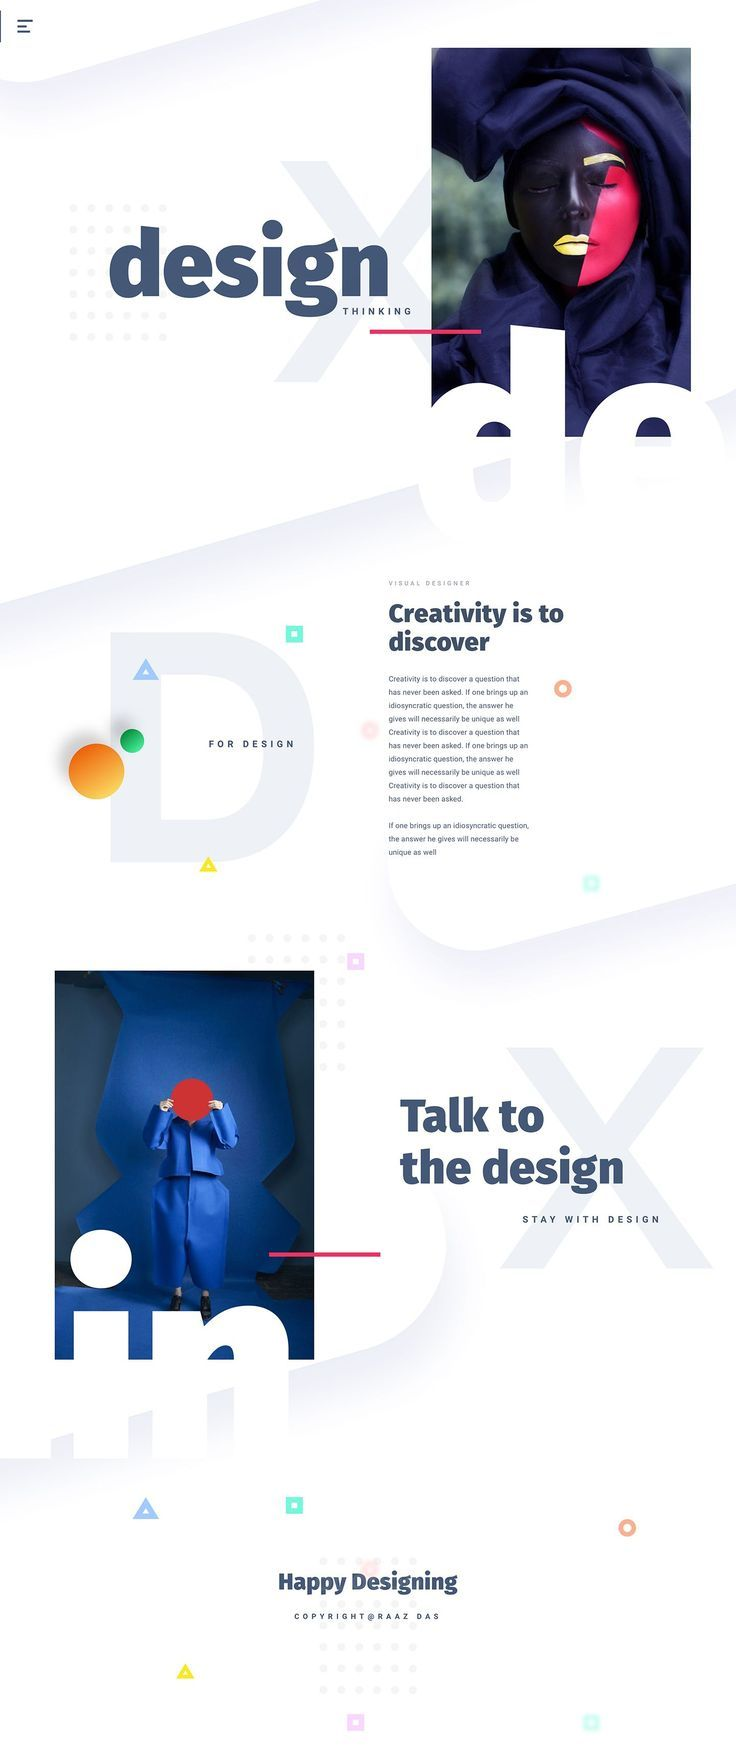 Simple layout design for powerpoint template inspiration design simple layout design for powerpoint template inspiration design web ui pinterest layout design template and website designs toneelgroepblik Gallery